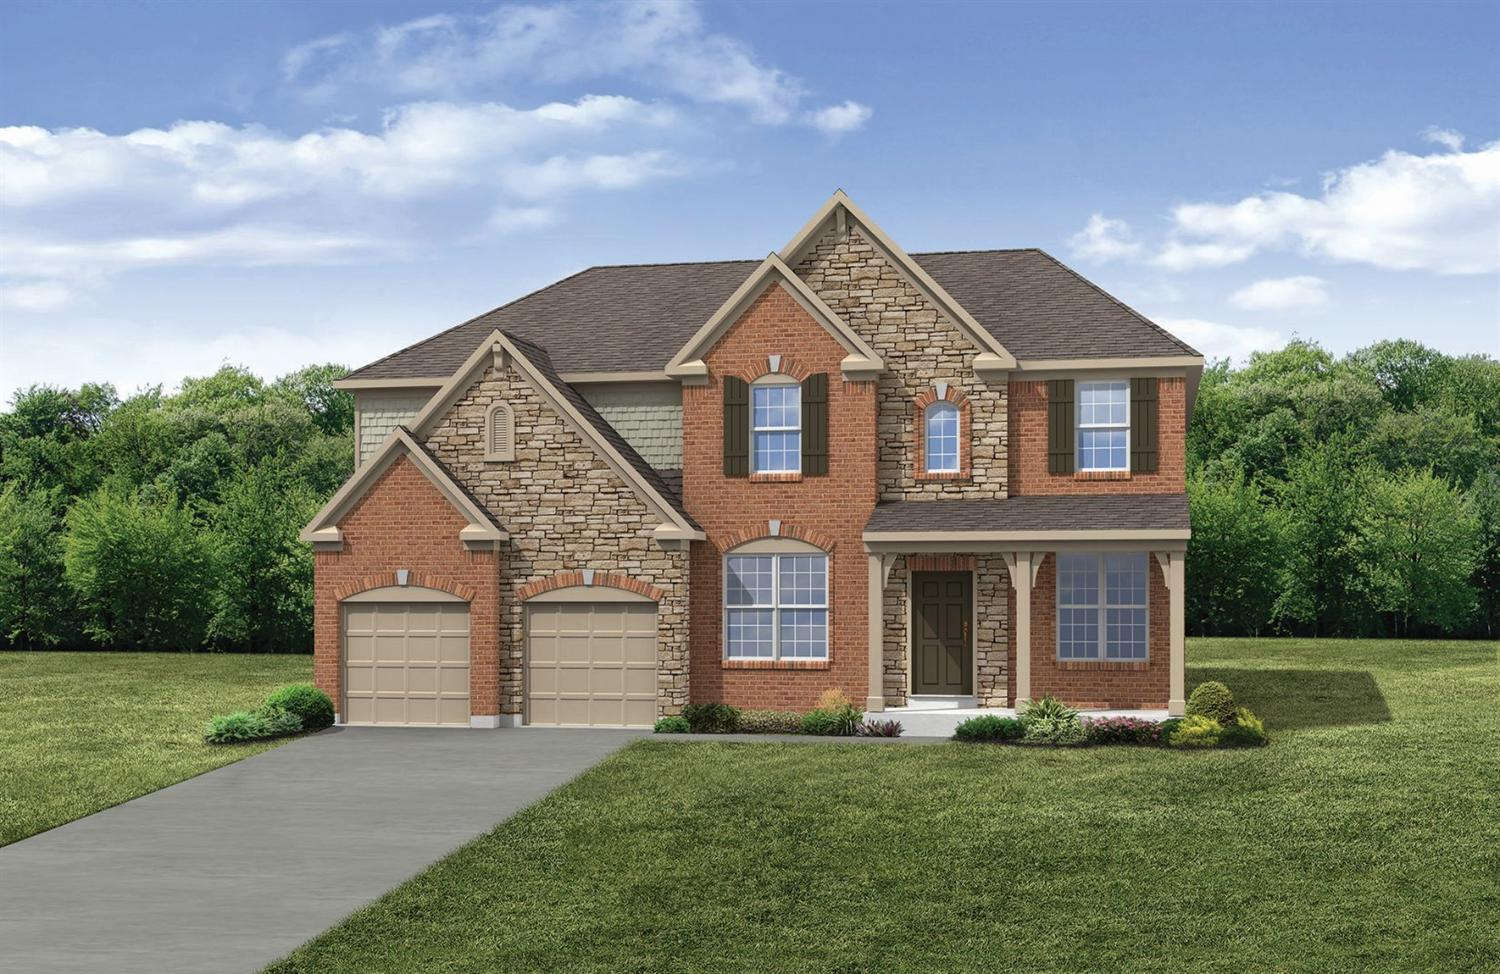 Photo 1 for 1301 Verbena Ct Hebron, KY 41048